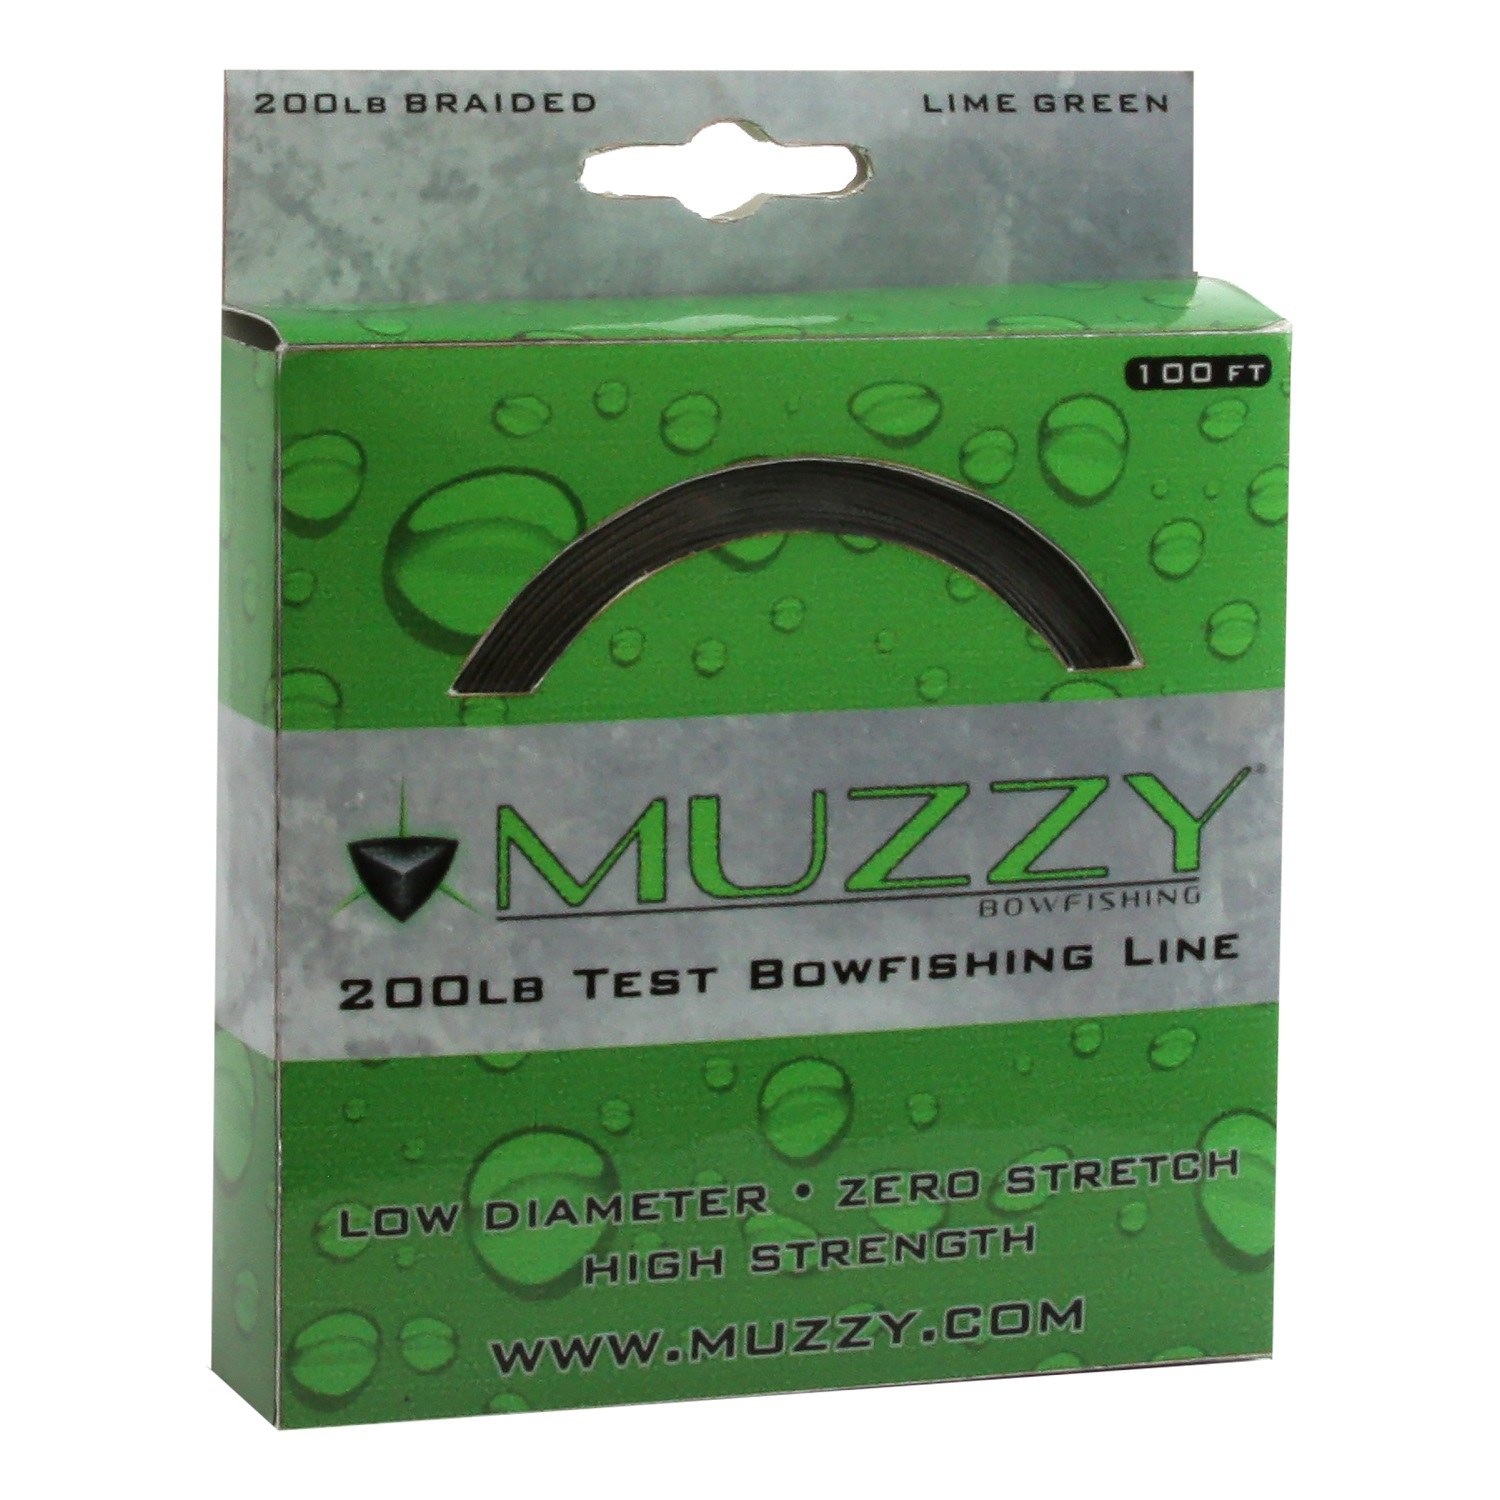 Muzzy 200# Braided Bowfishing Line, 100' Spool, Lime Green